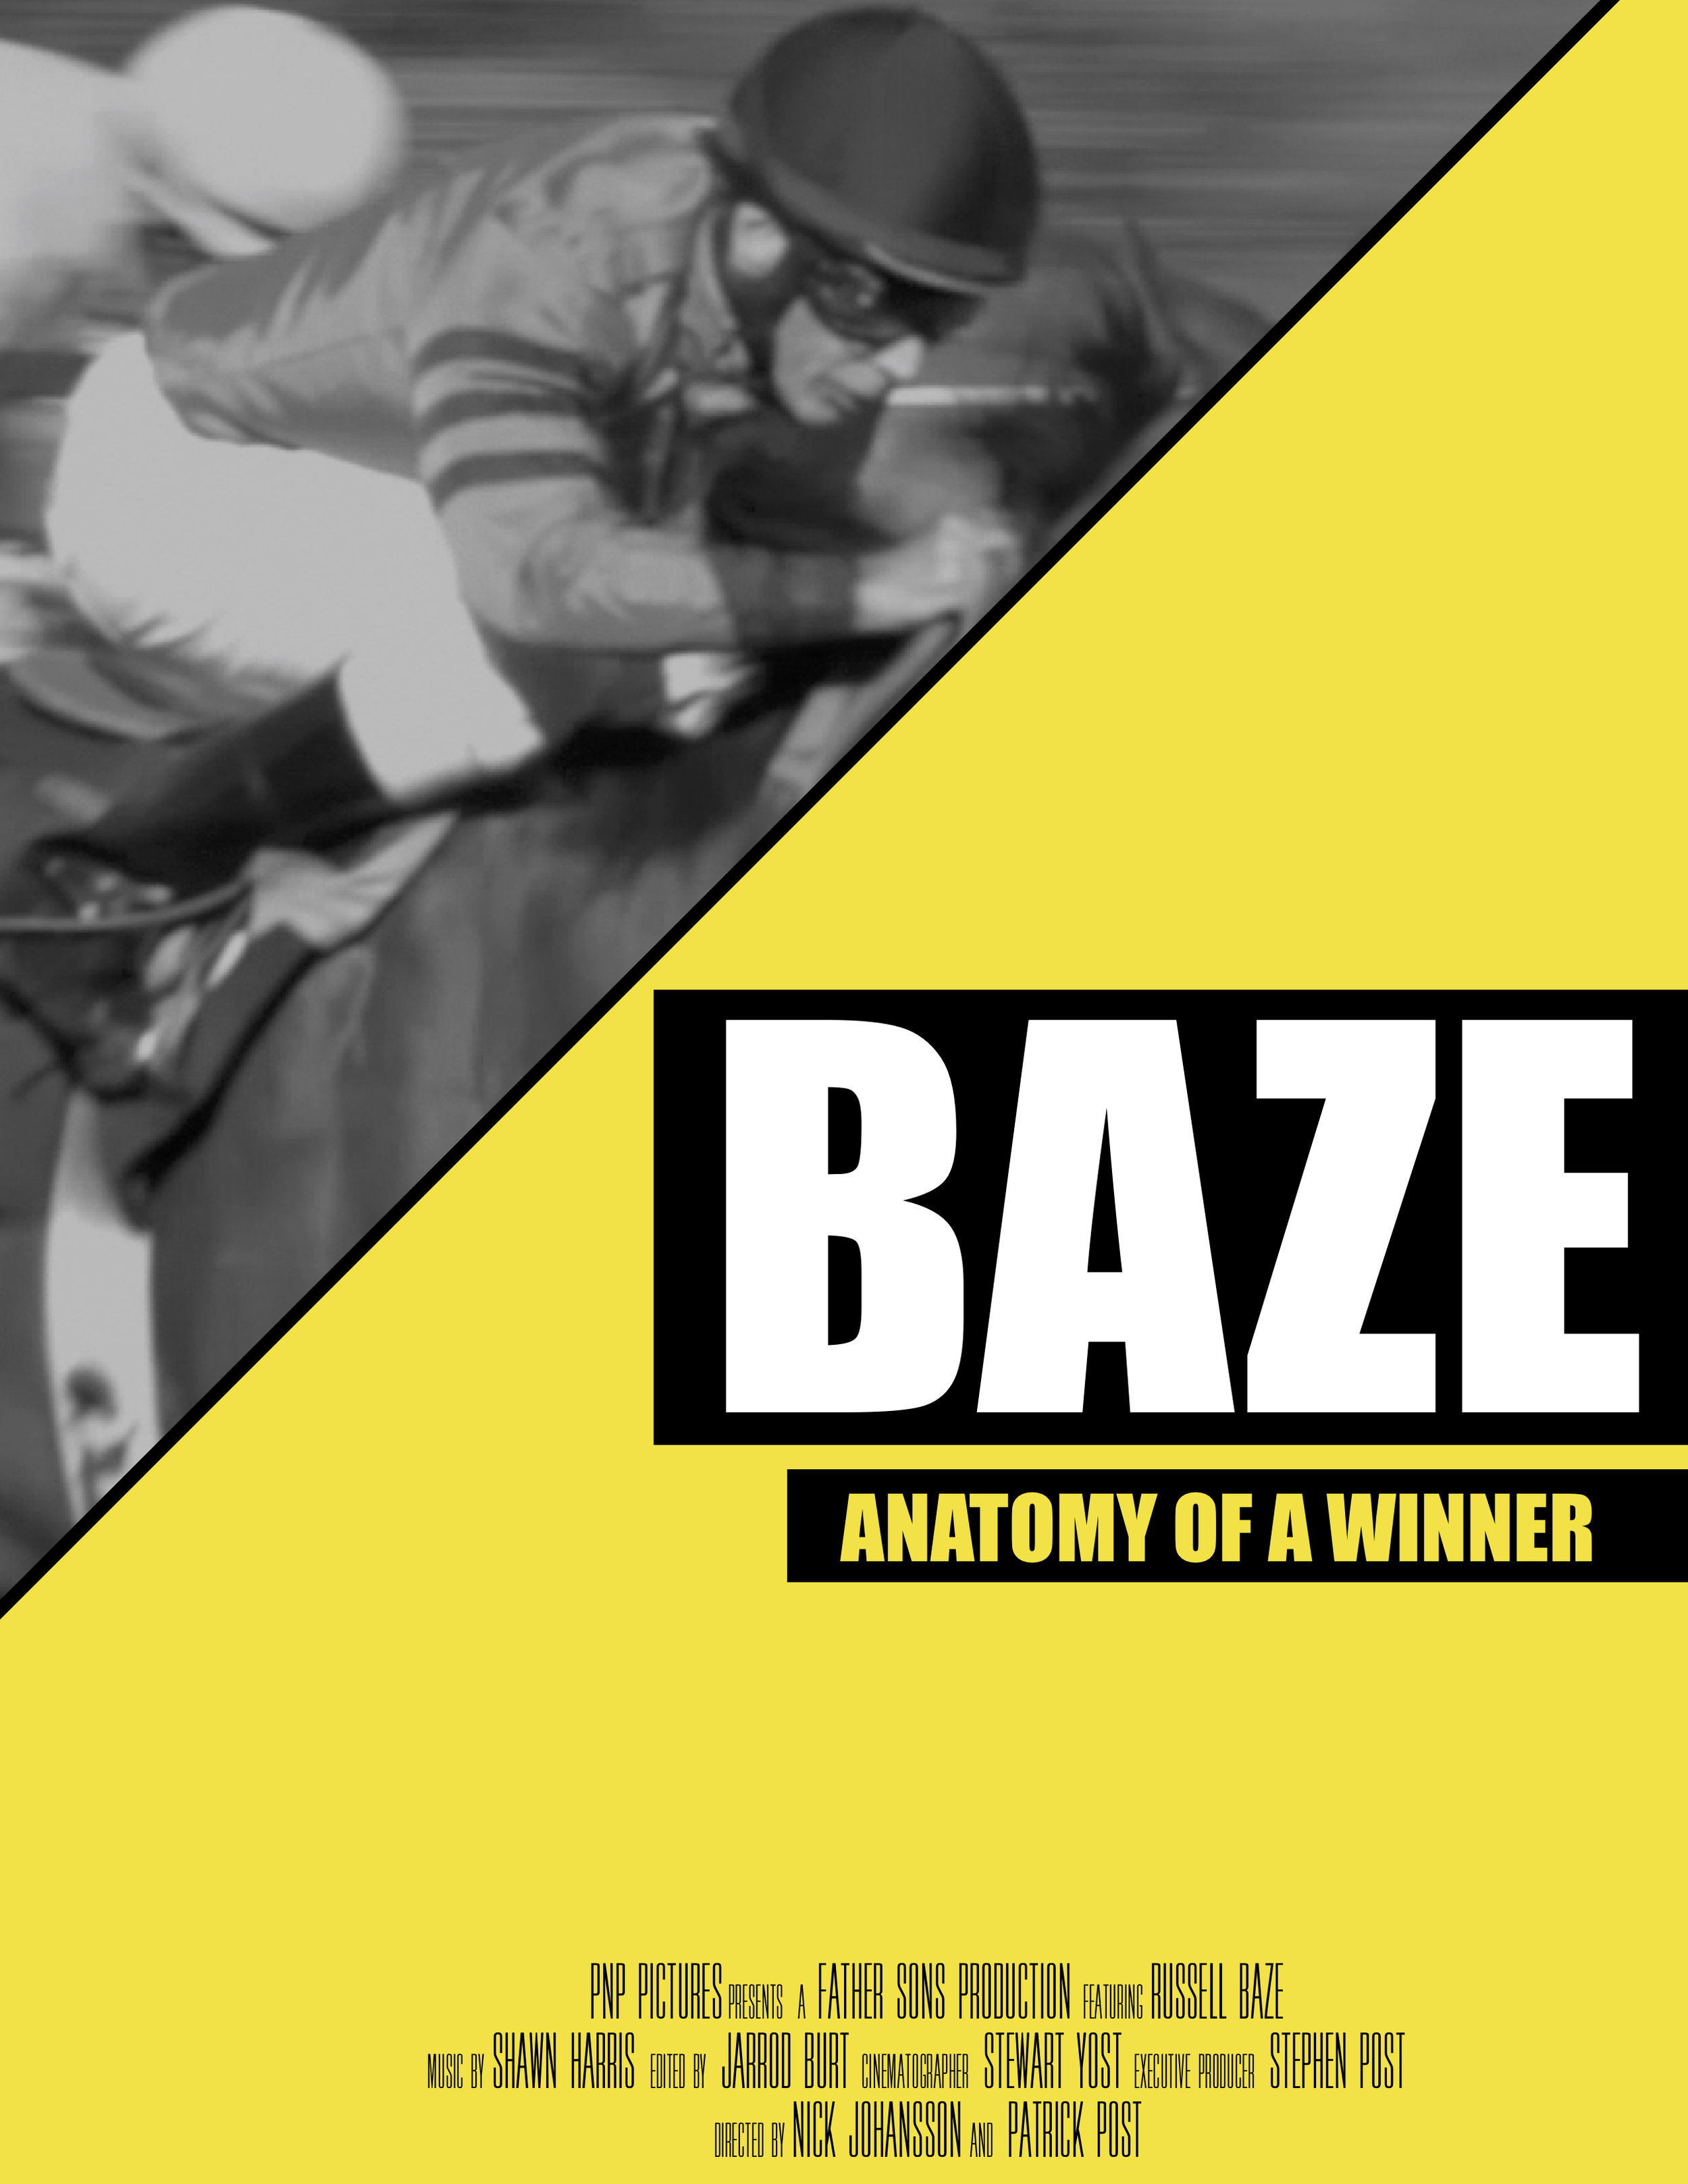 BAZE: Anatomy Of A Winner - Russell Baze is thoroughbred horse racing's all time winningest jockey with over 12,000 wins and more than 50,000 mounts under his belt.Yet as he enters the twilight of his career these untouchable numbers and records have not placed his name among the greatest athletes of all time.How can such incredible accomplishments go largely unnoticed? Our documentary aims to find out.The film follows Russell for more than five years as he sets or breaks almost every major record in the sport. Gaining intimate access to his daily life and intense dietary and training regimen, the filmmakers discovered talent, dedication and sacrifice unlike any other.BAZE uncovers what it takes for a 57 year-old athlete to continually perform at the highest of levels and yet maintain a balanced sense of humor and a stronger sense of family.